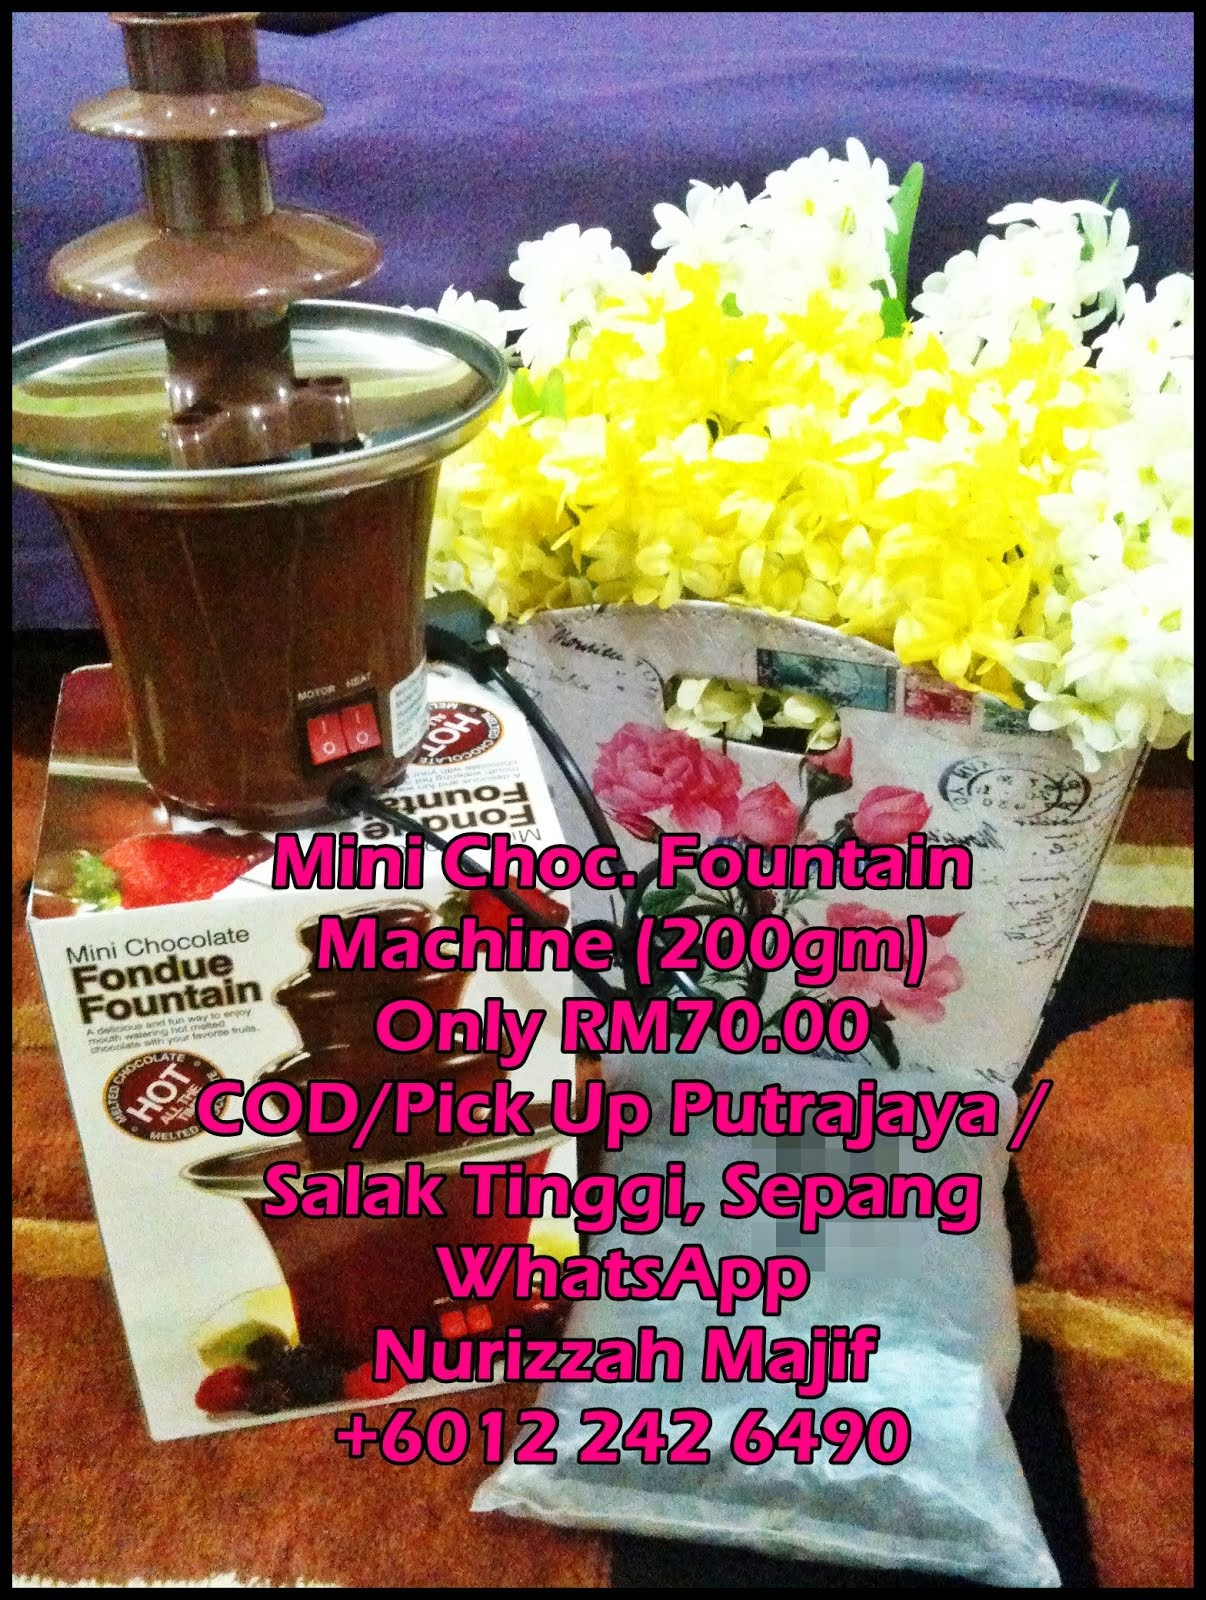 [BELI MESIN MINI CHOC. FOUNTAIN]